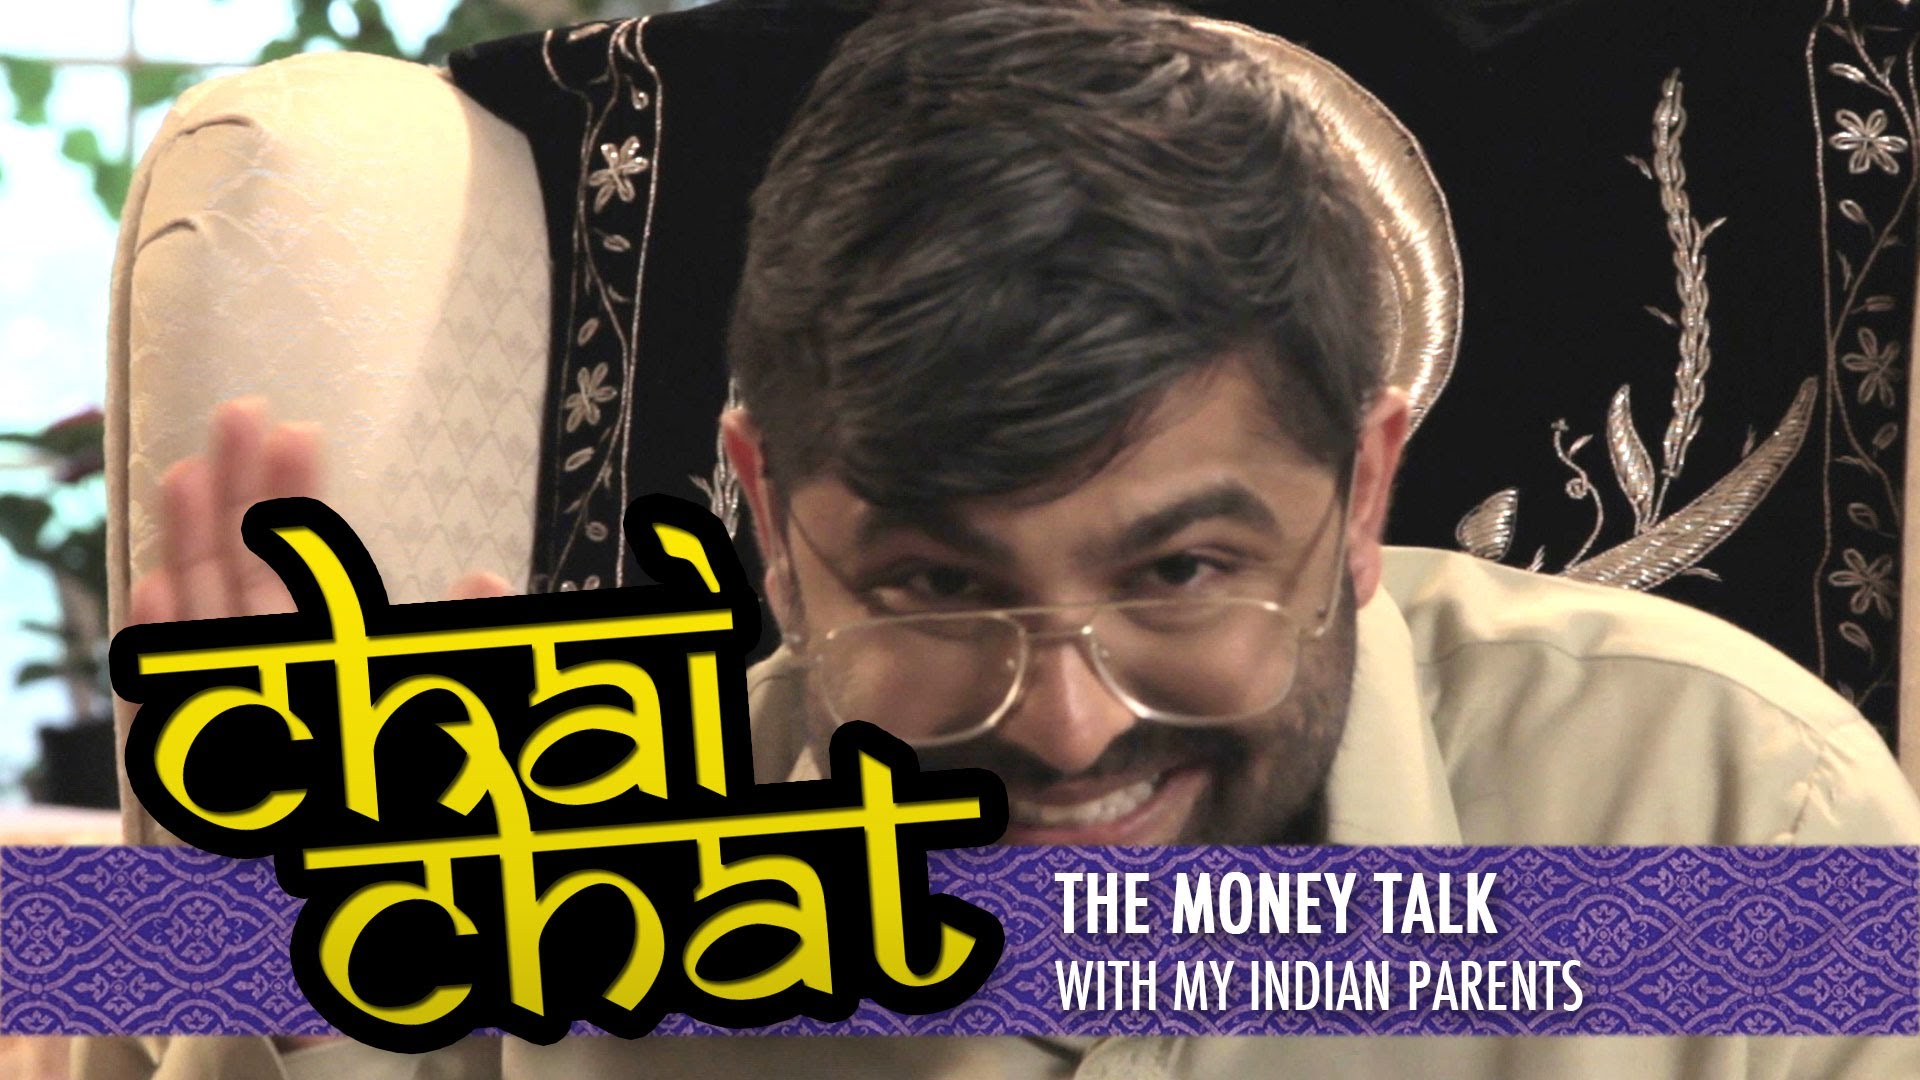 Chai Chat: The Money Talk with My Indian Parents